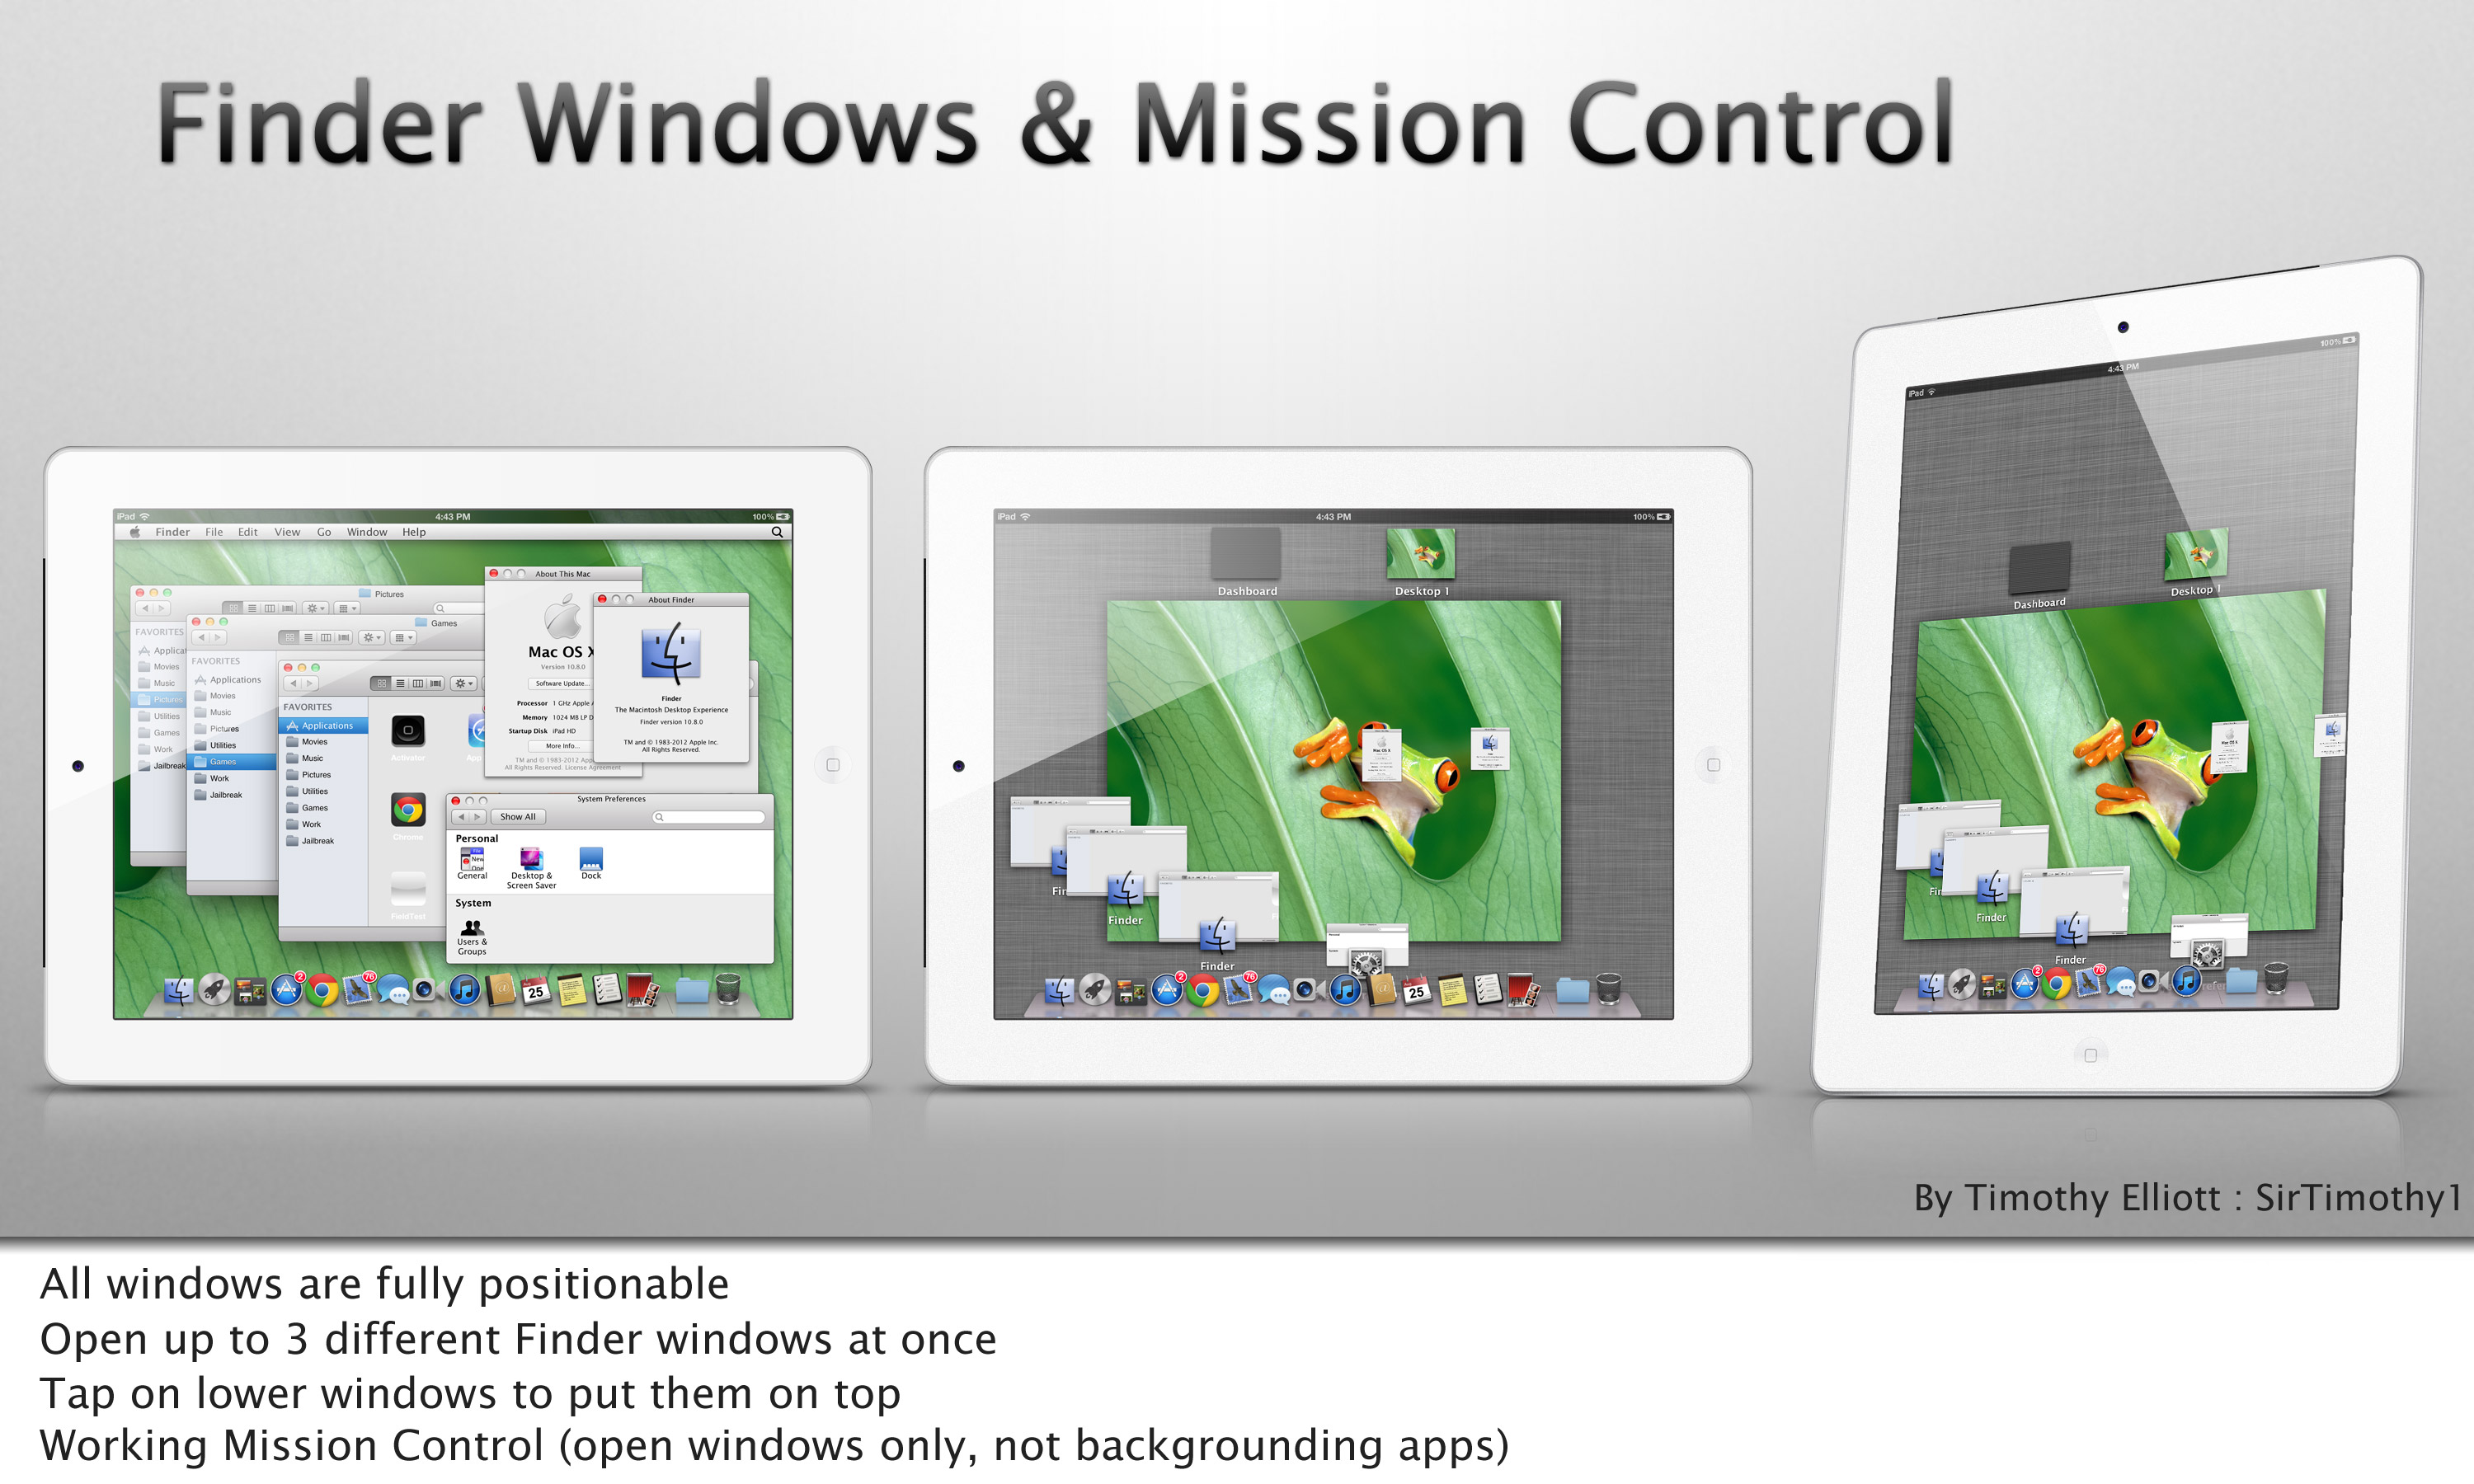 Release mountain lion ultimatum ipad modmy forums for 20 40 window missions